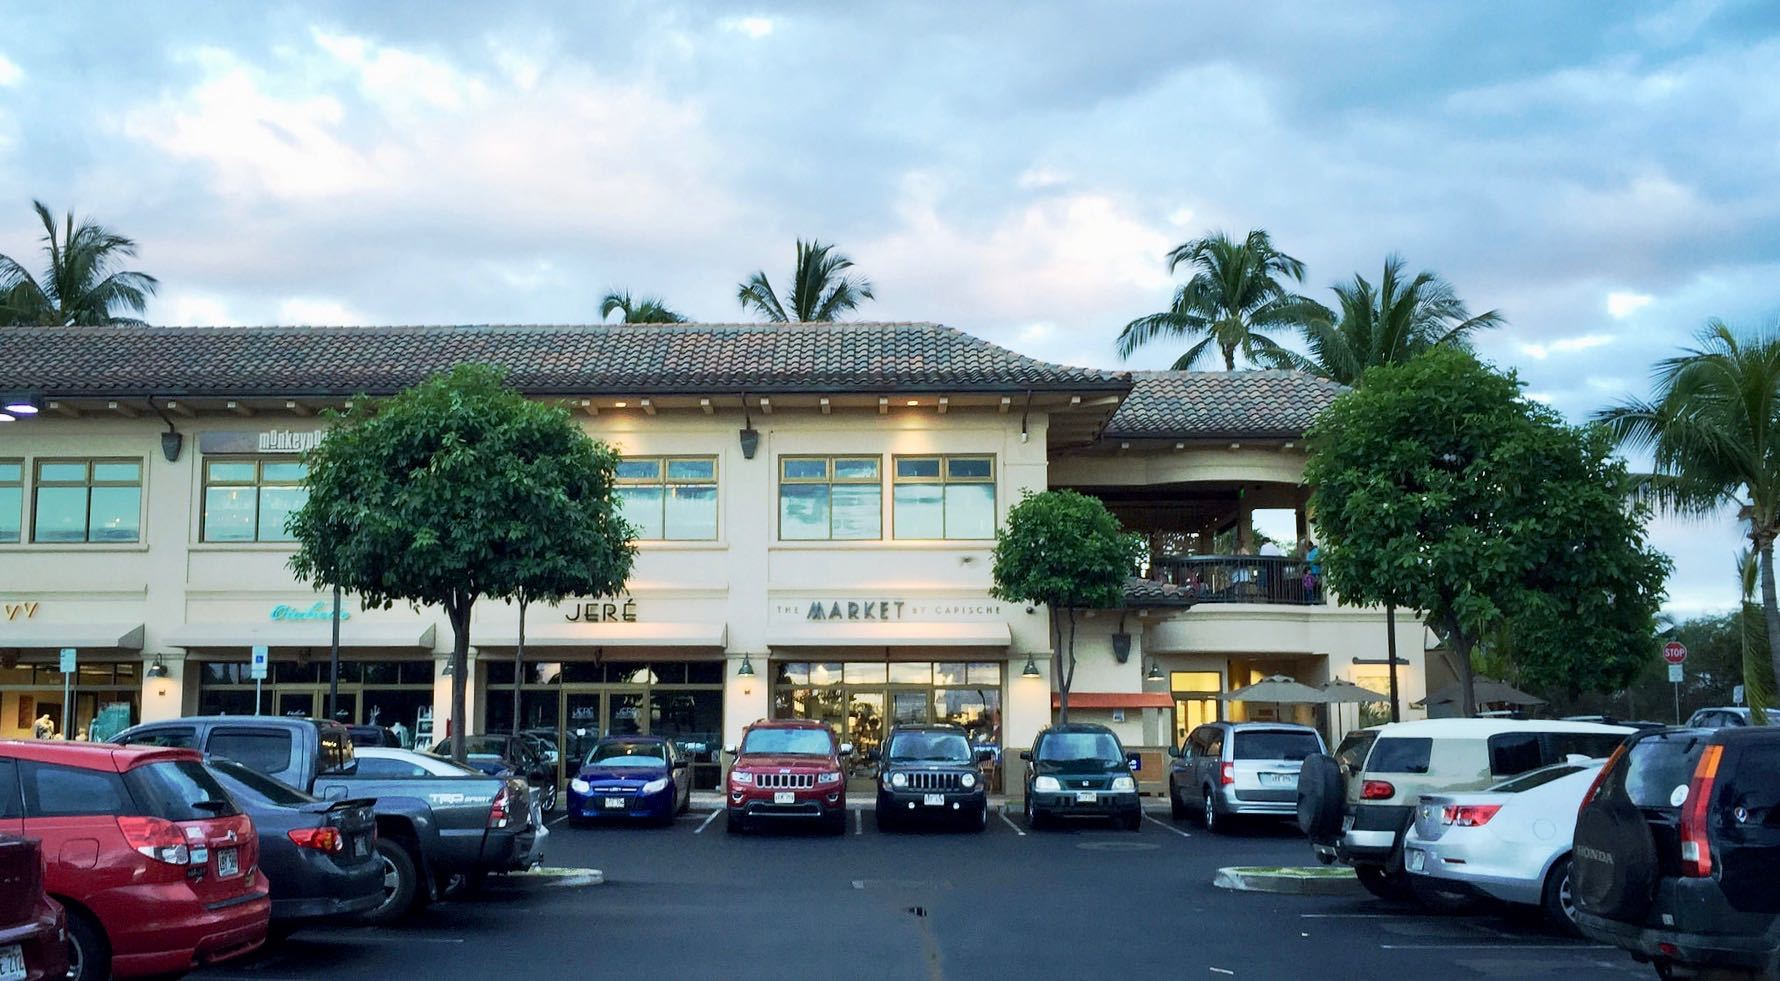 Wailea Gateway Center, Wailea Maui HI